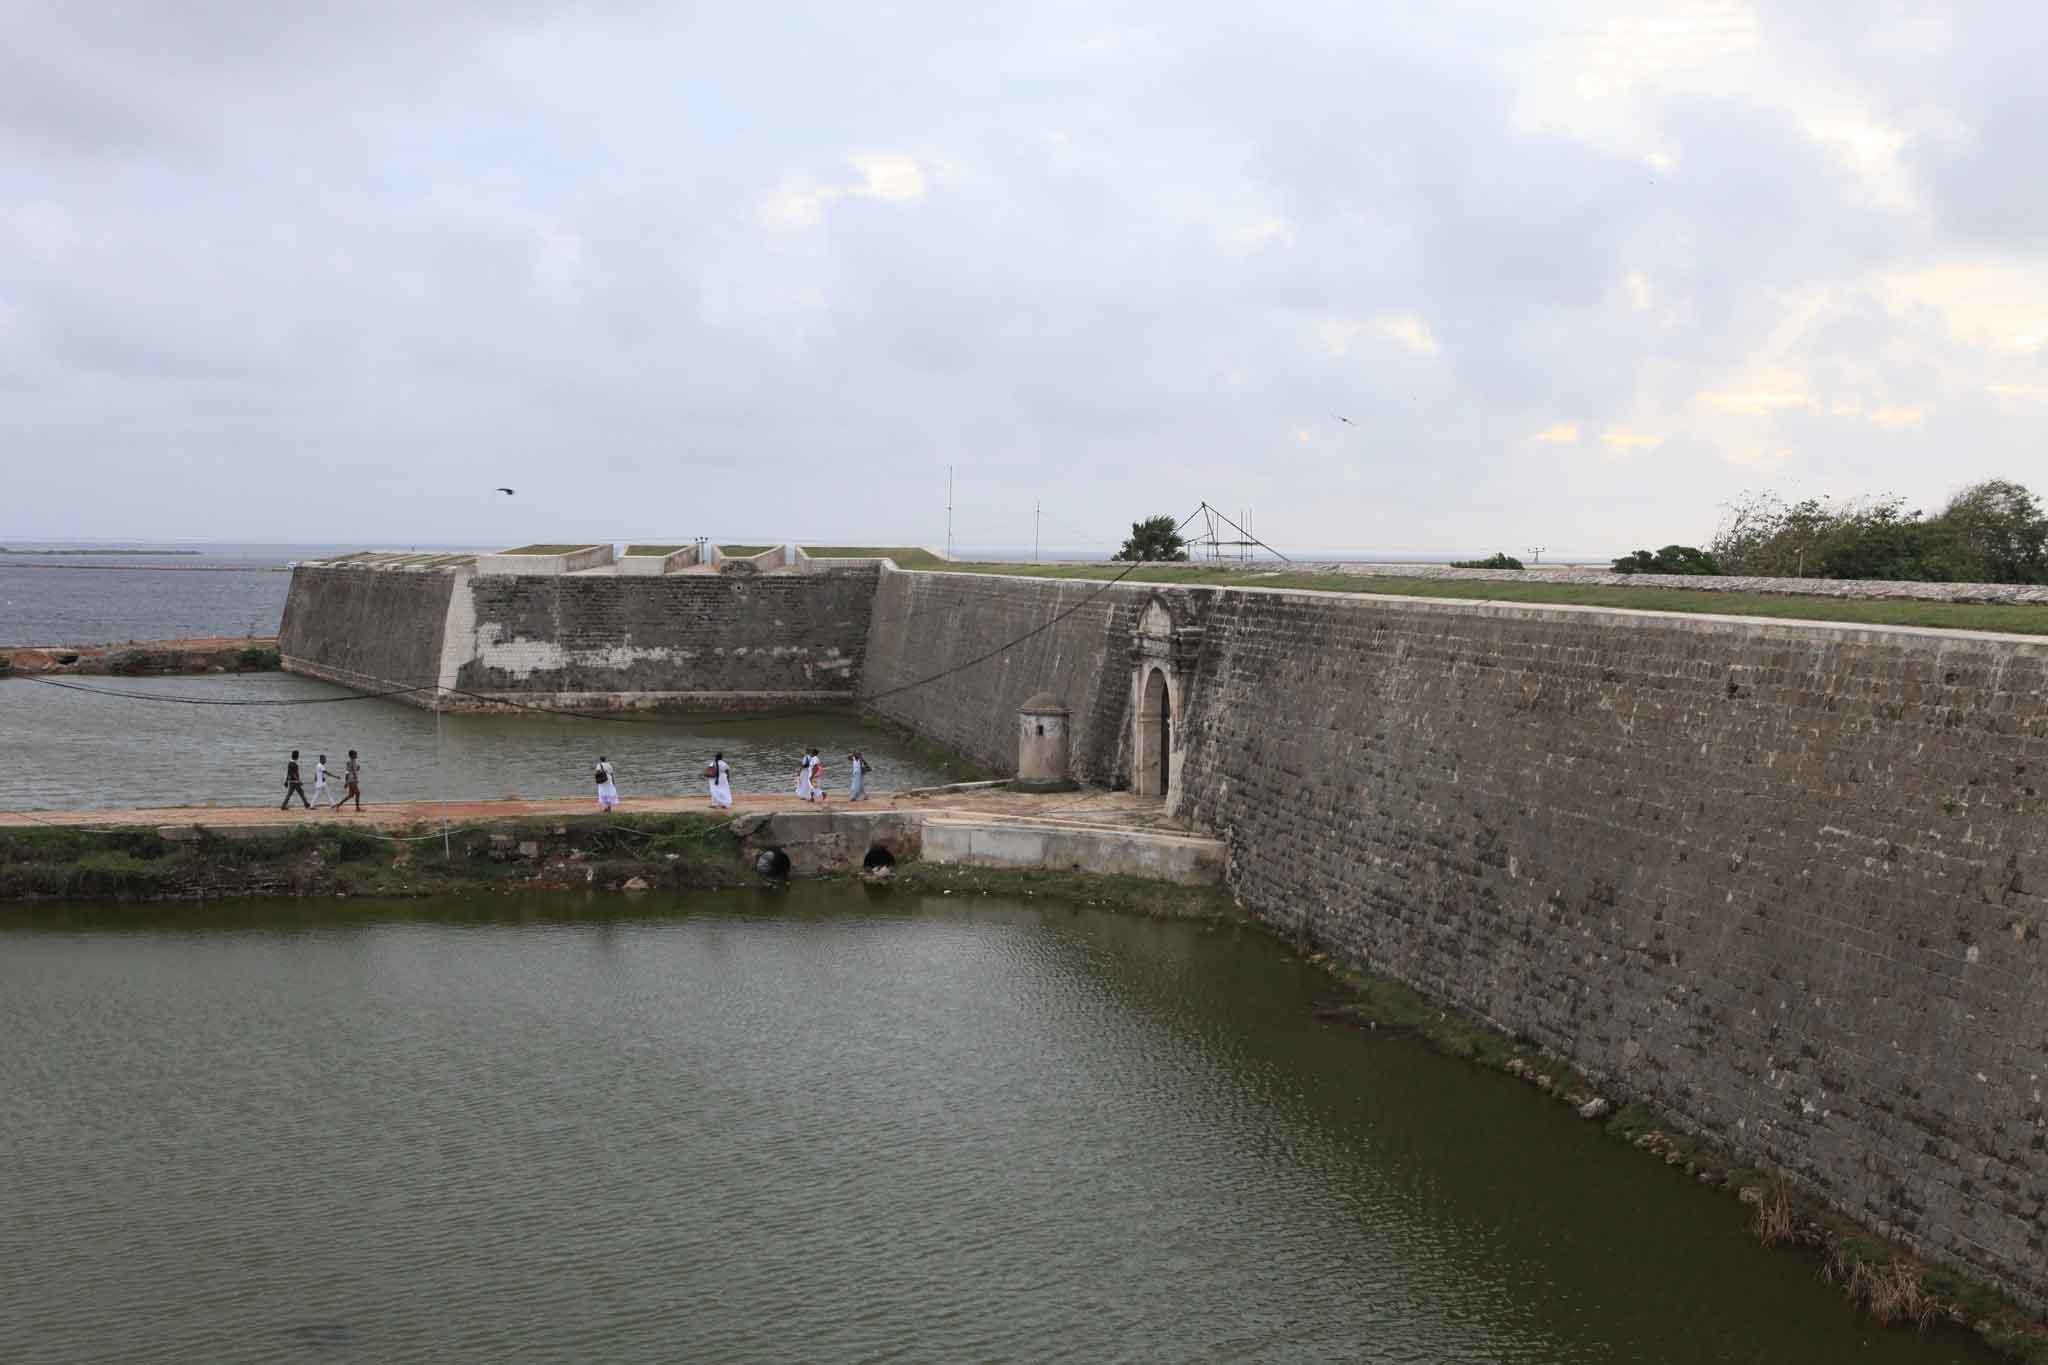 The Jaffna Fort